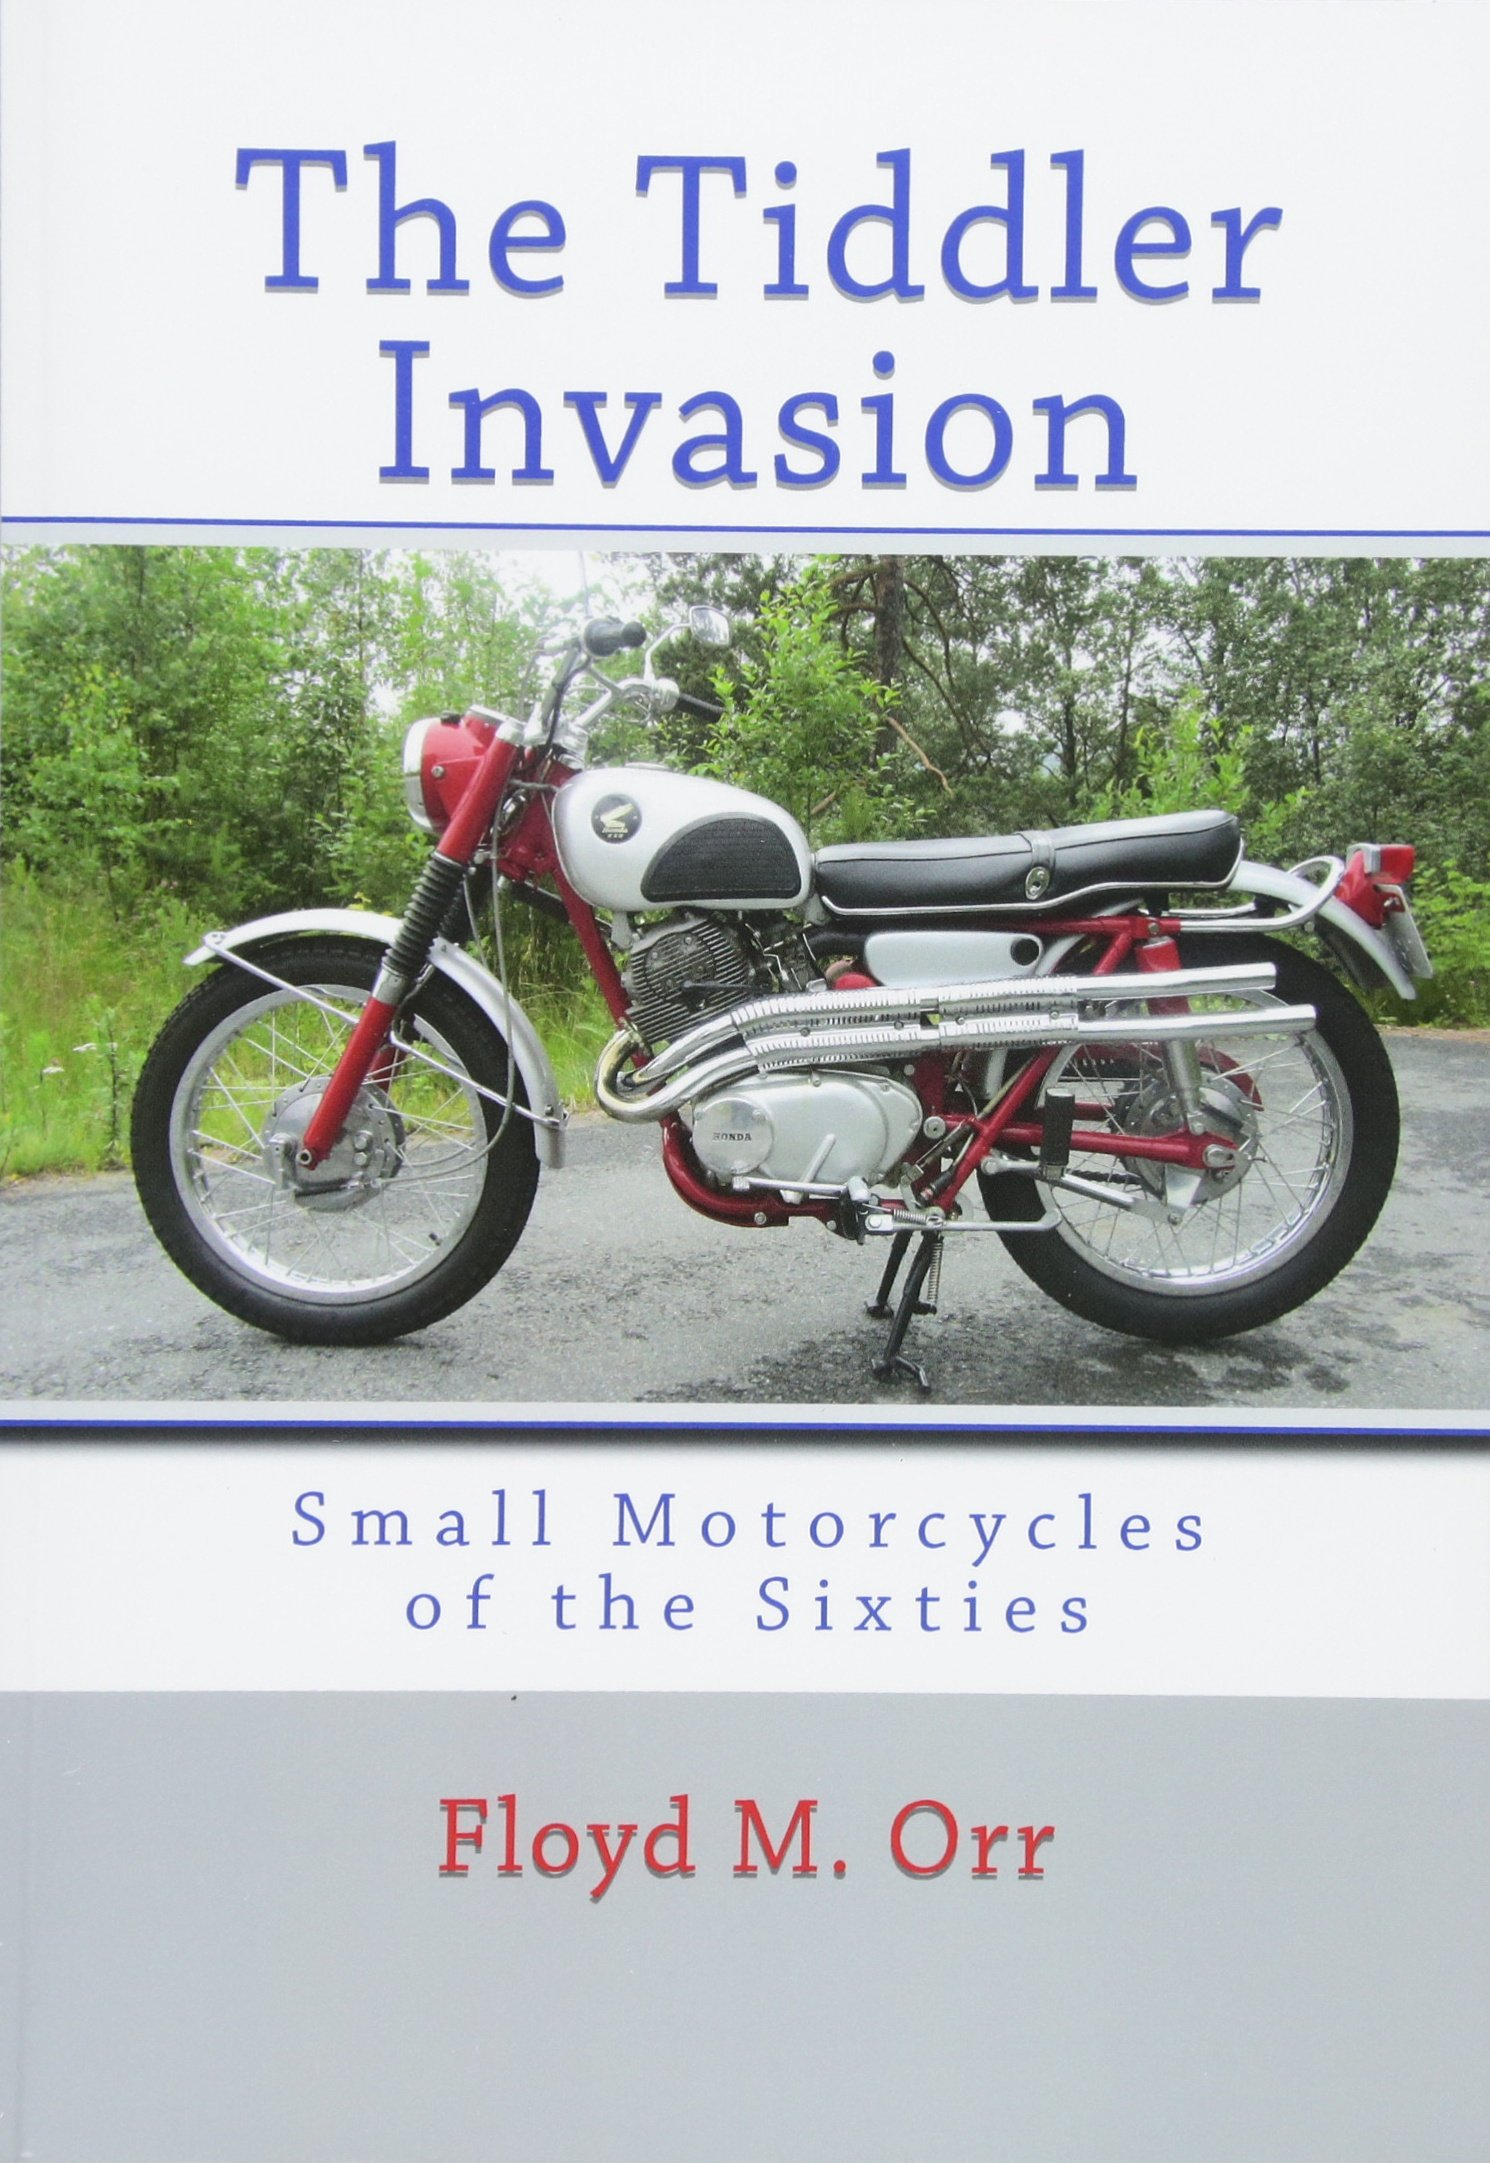 The Tiddler Invasion Small Motorcycles Of Sixties Floyd M Orr 1960s Honda 50cc Bike 9780615841670 Books